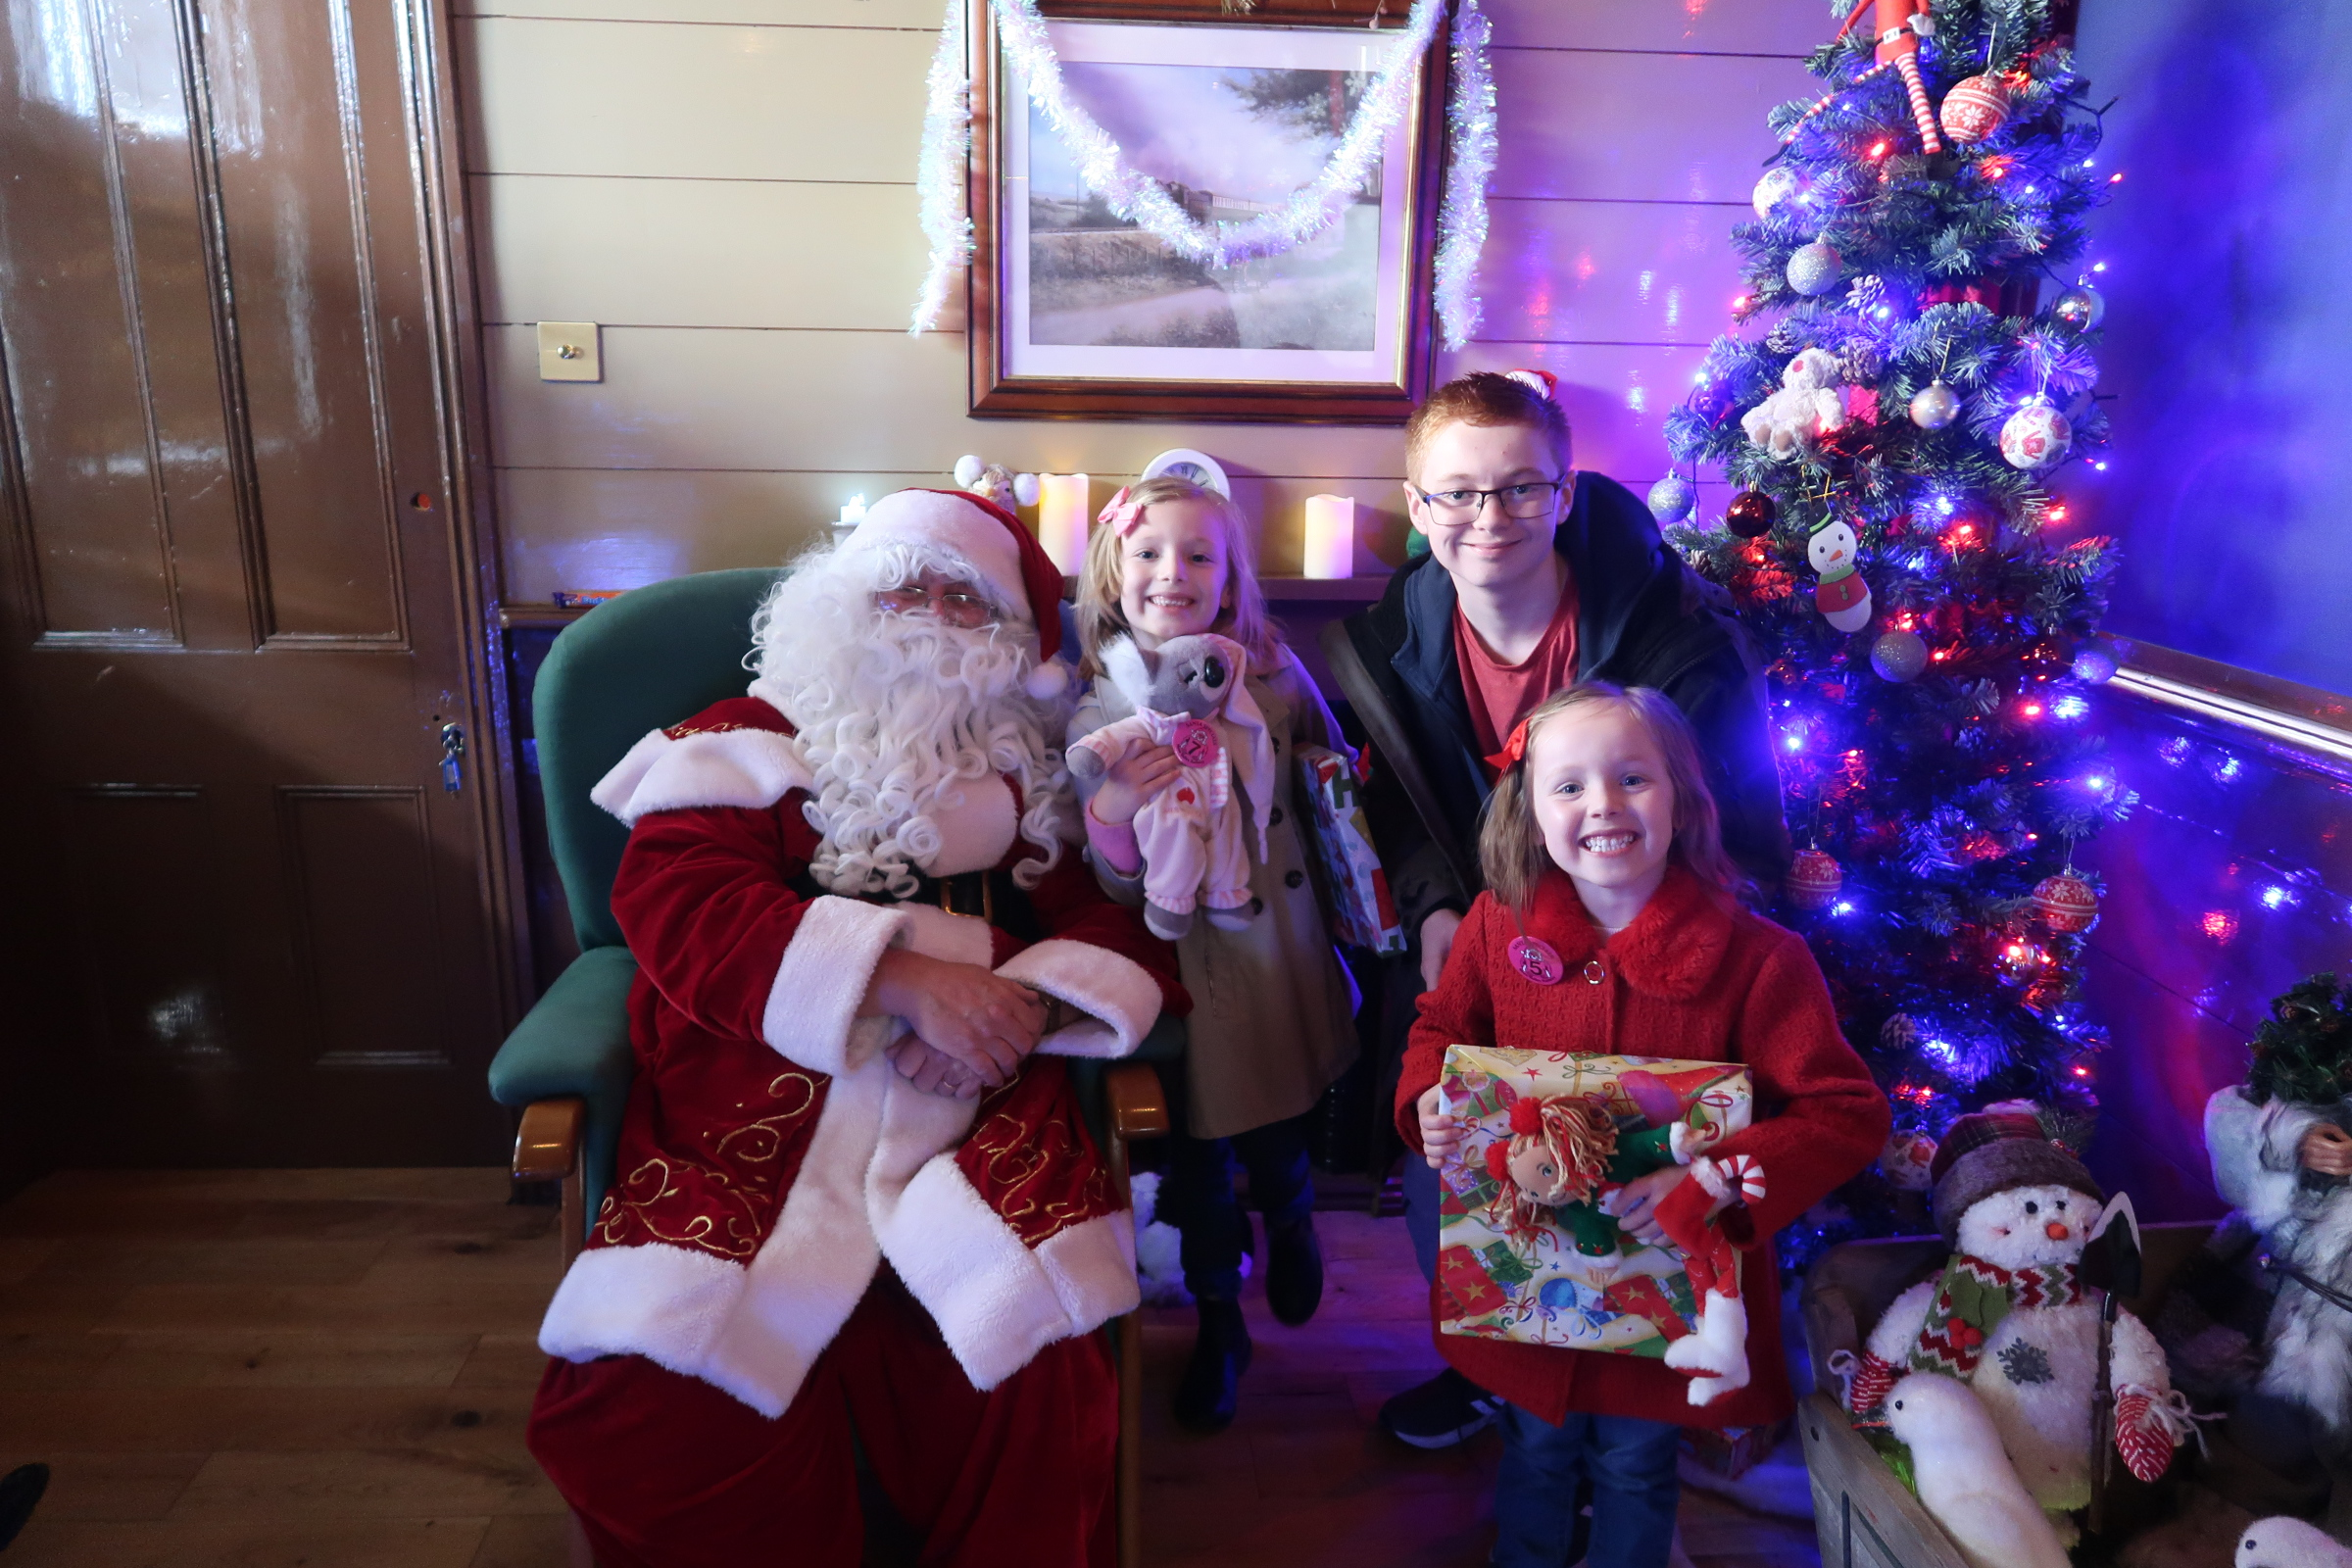 We went on the Santa Express in Wansford